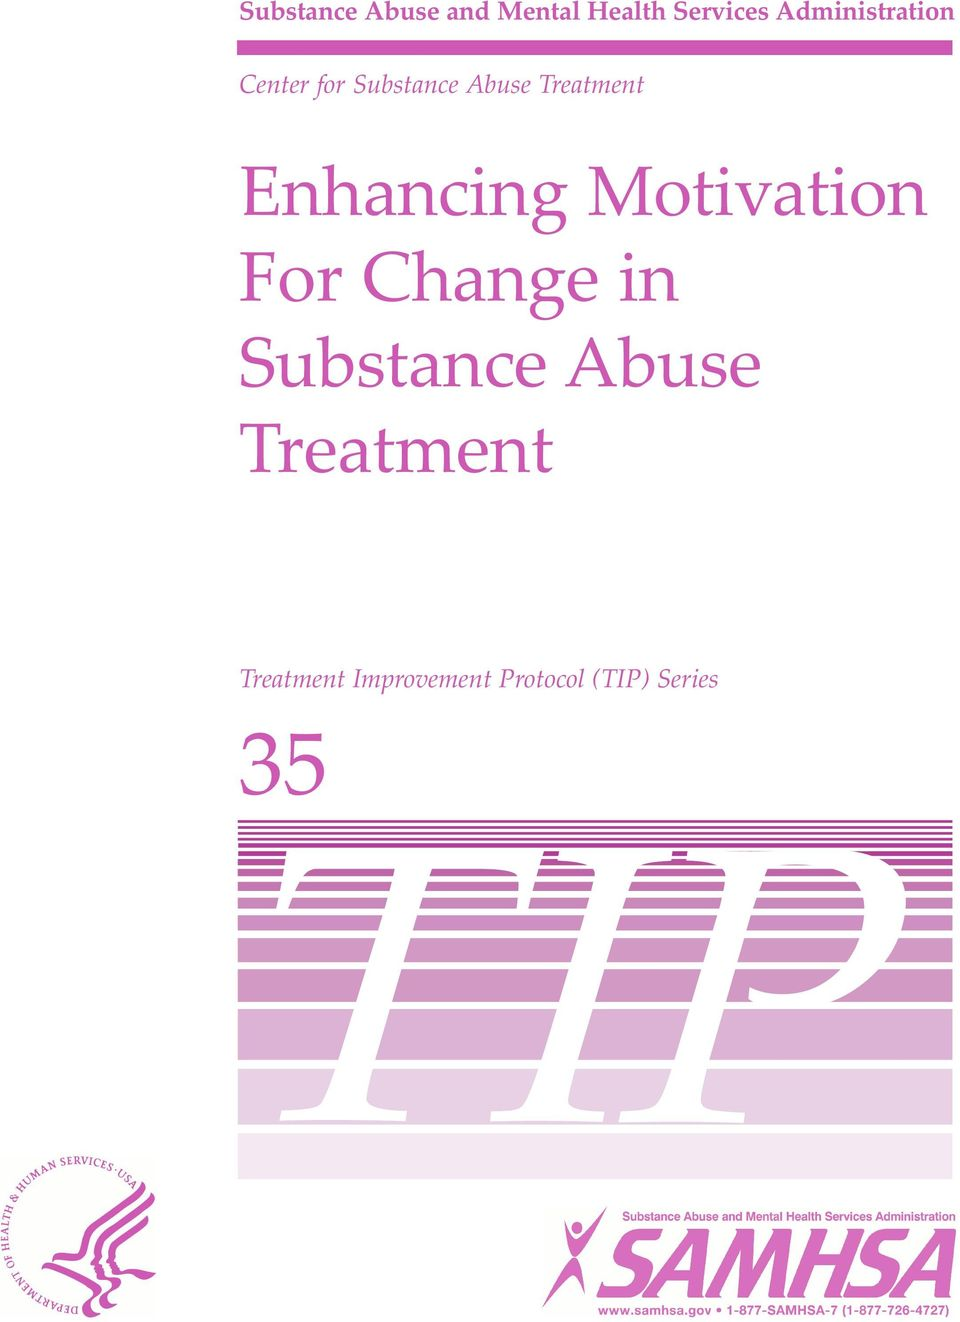 Treatment Enhancing Motivation For Change in